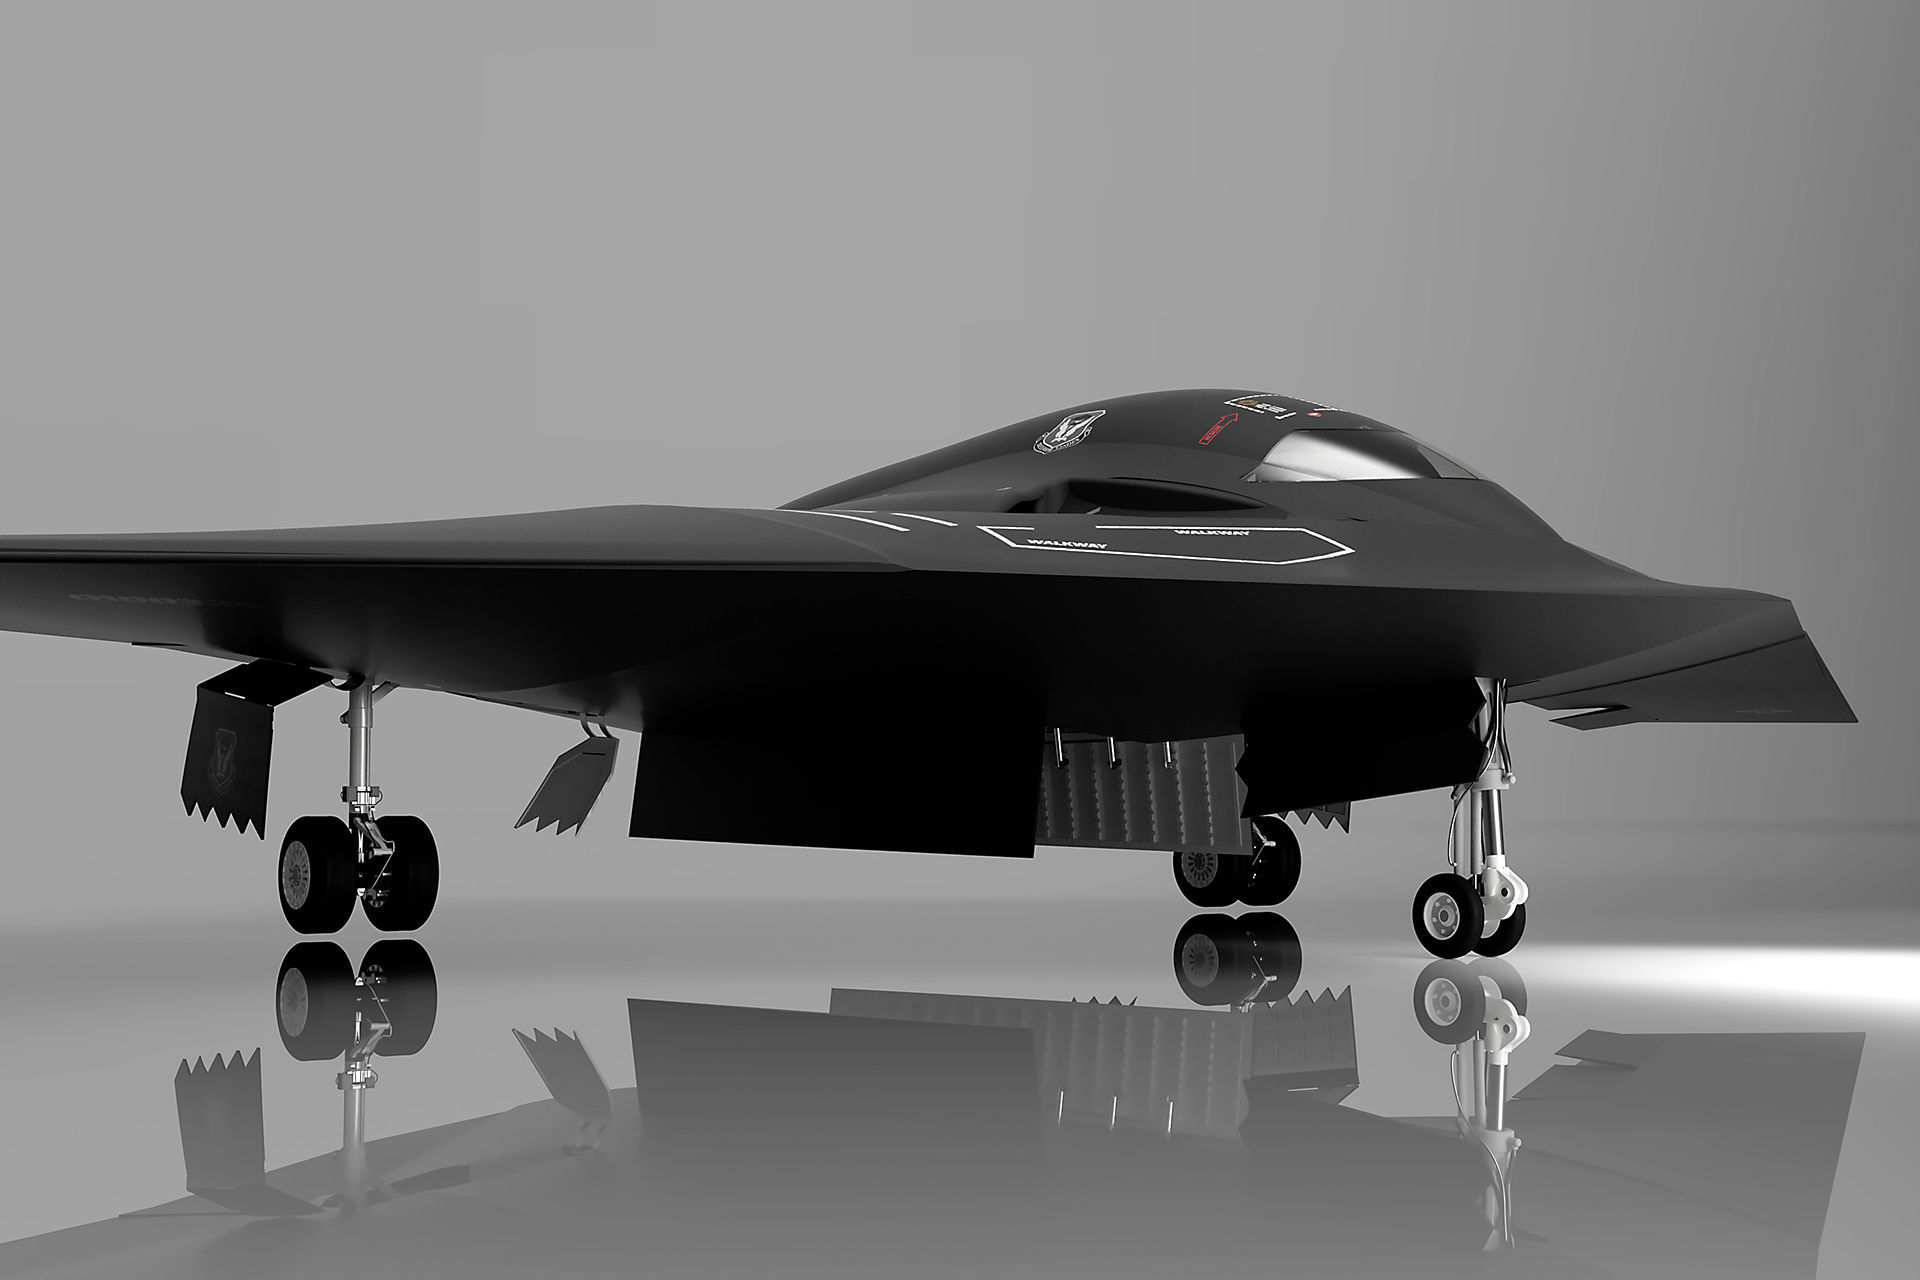 B-21 Raider LRS-B Next Generation Stealth Bomber